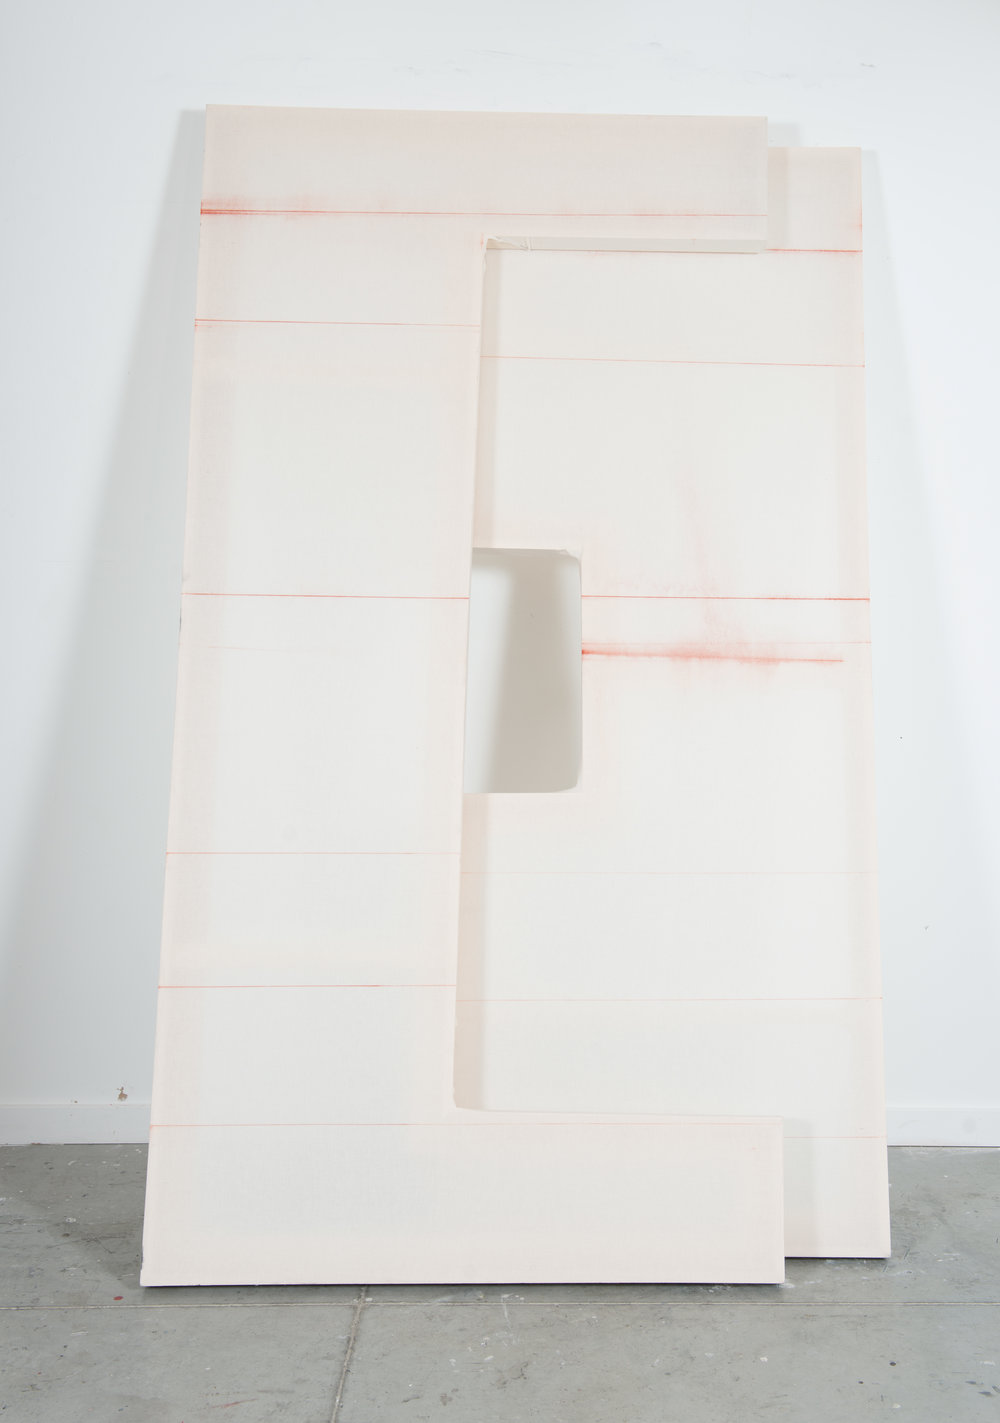 "That Moment When Things Are Not Absolutely Congealed, 2016, chalk, muslin, wood, 96"" X 60"" X 2.5"" (overall dimensions)"